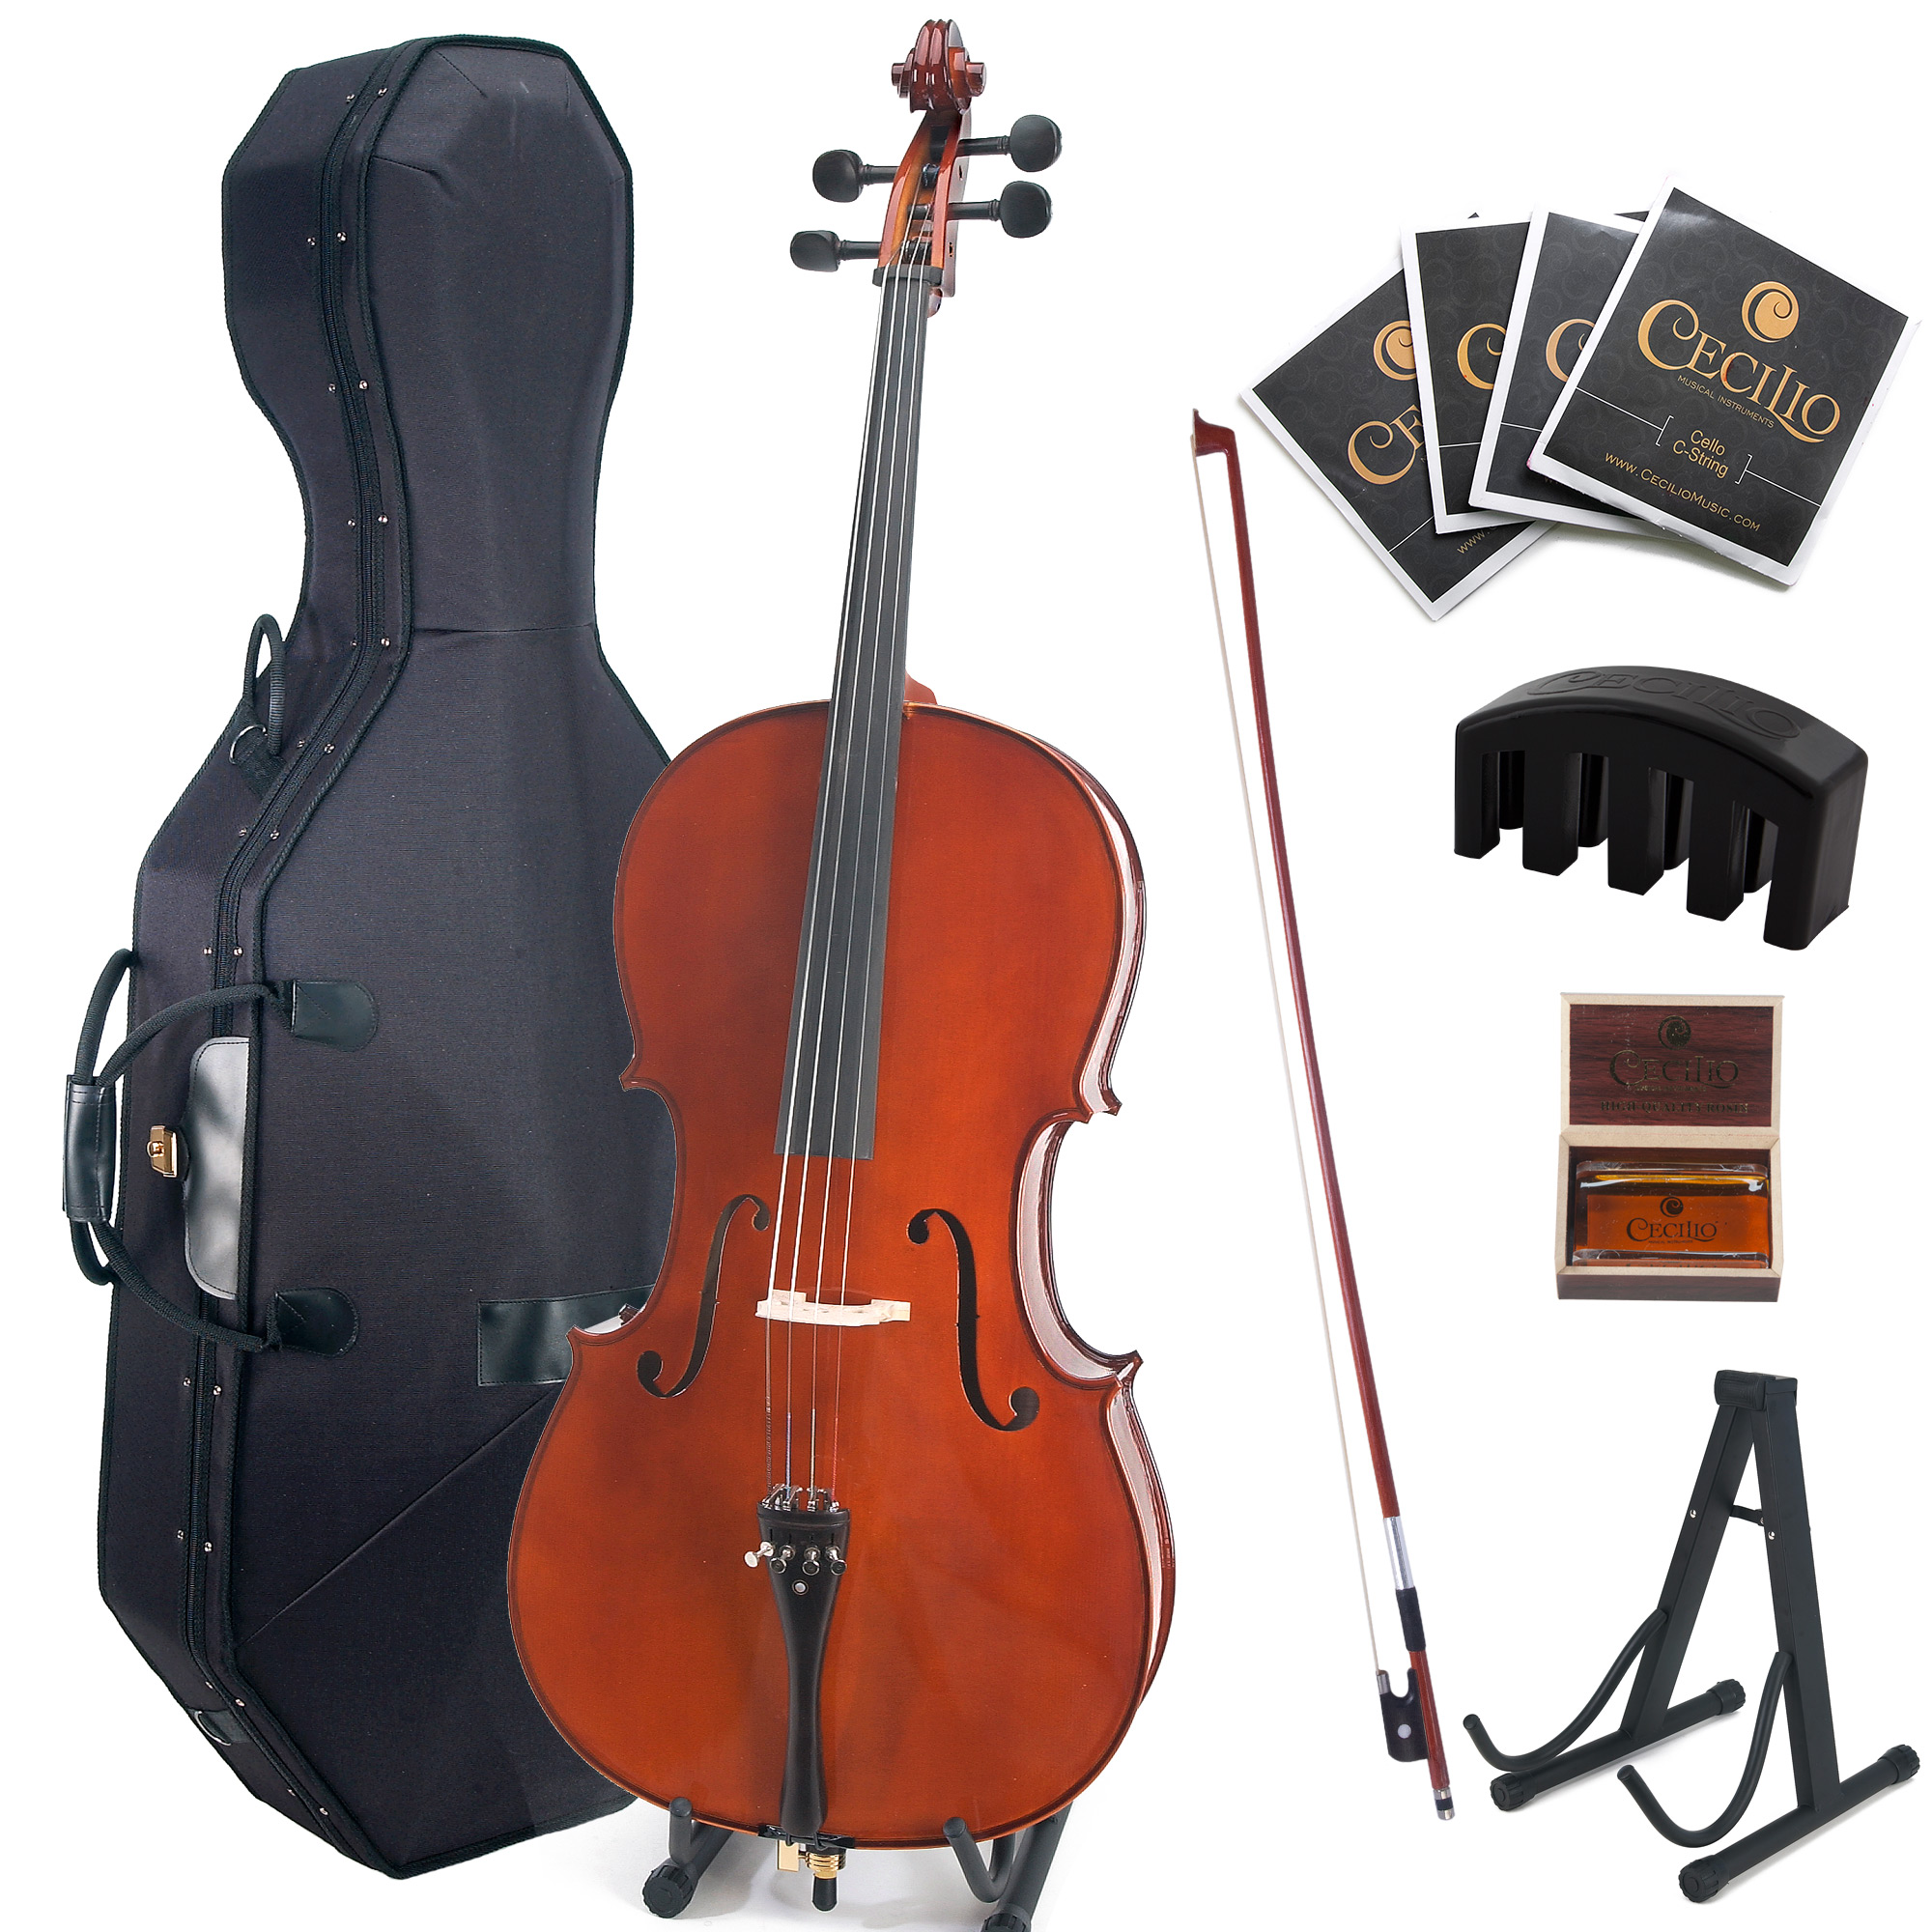 Cecilio CCO-500 Ebony Fitted Flamed Solid Wood Cello with Hard and Soft Case, Cello Stand,... by Cecilio Musical Instruments